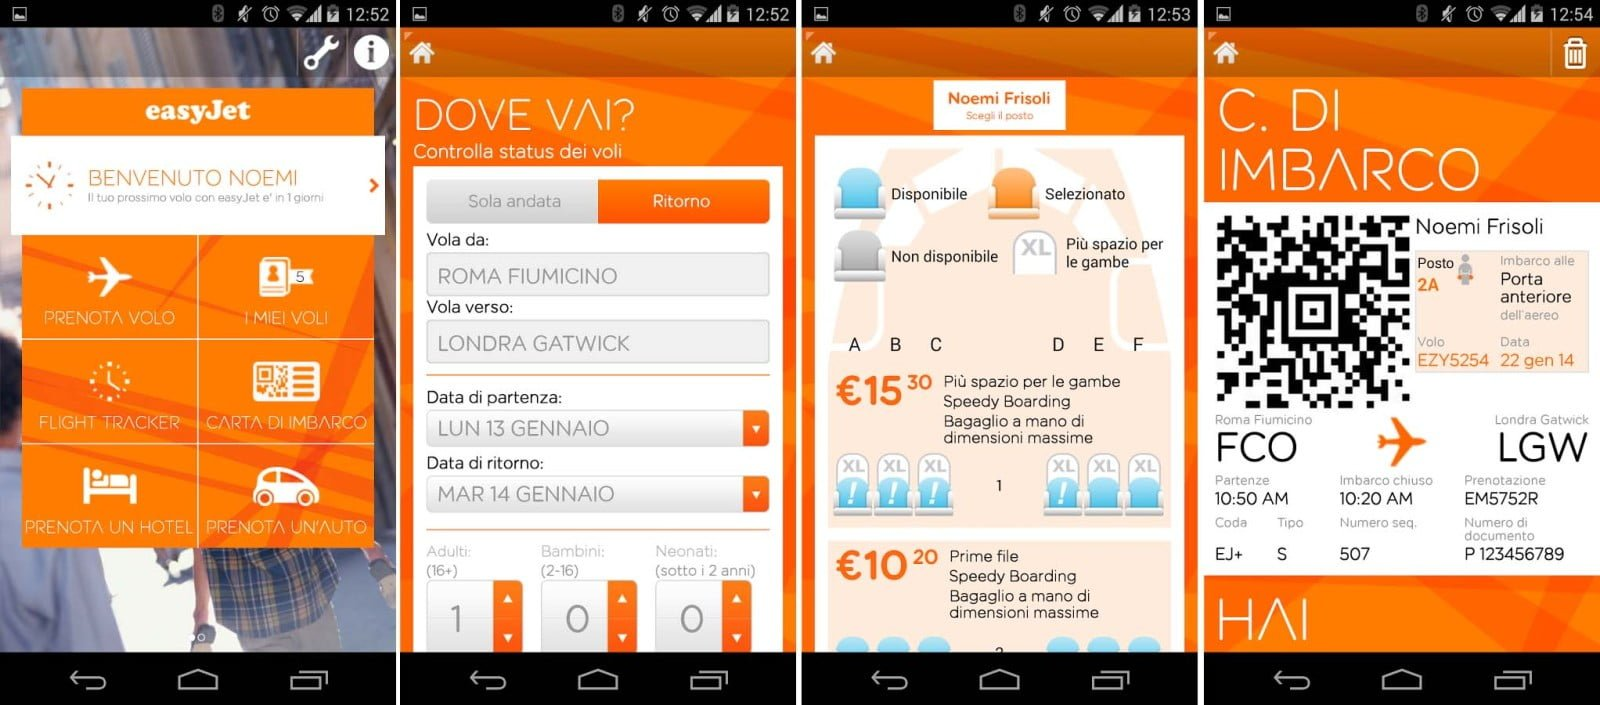 App EasyJet per Android. Credit: easyJet Airline Company Limited